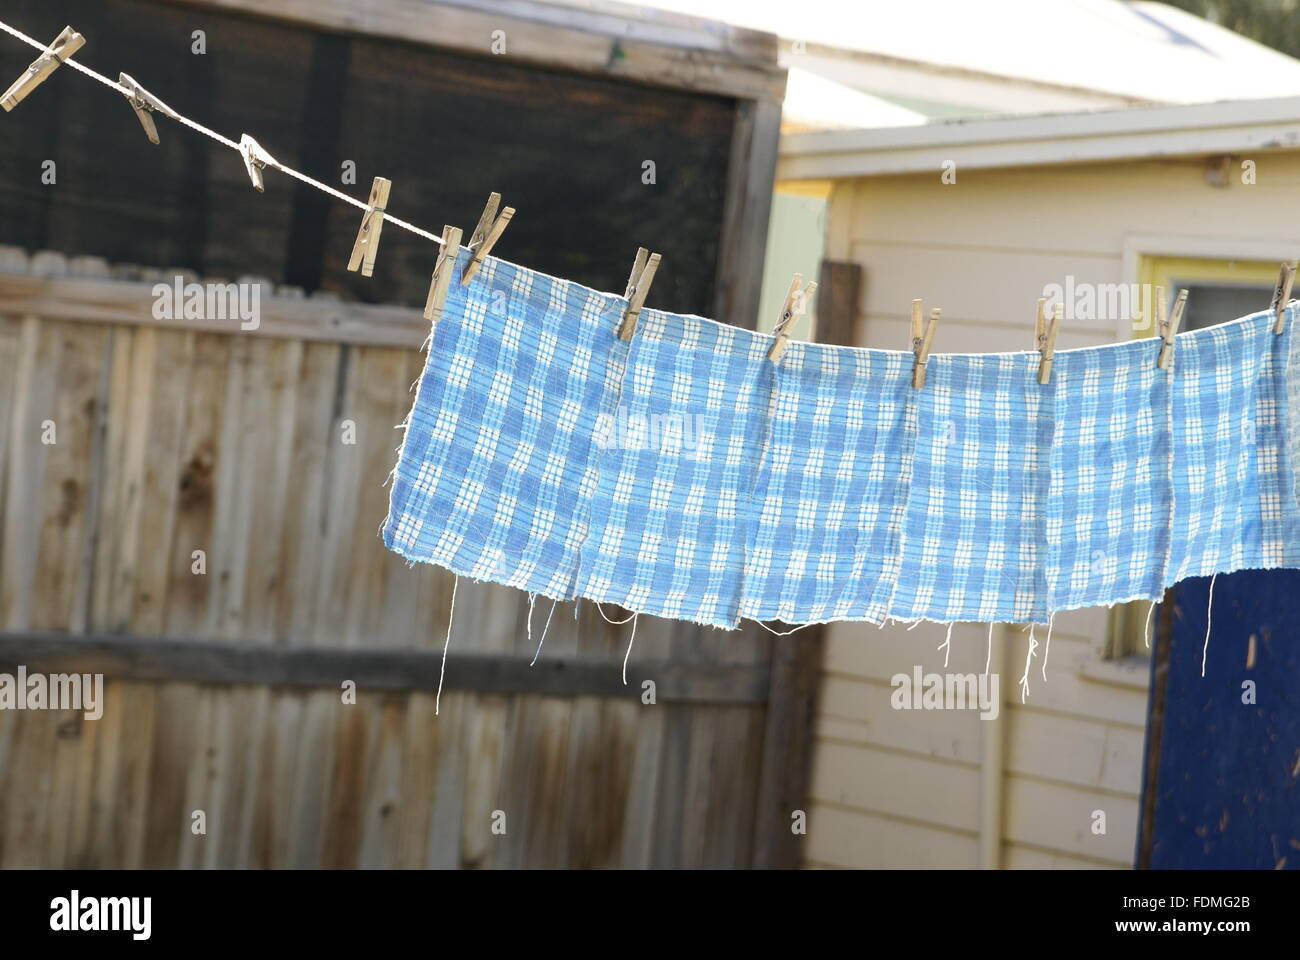 Blue gingham homemade hand towels hanging on an outdoor clothesline. - Stock Image